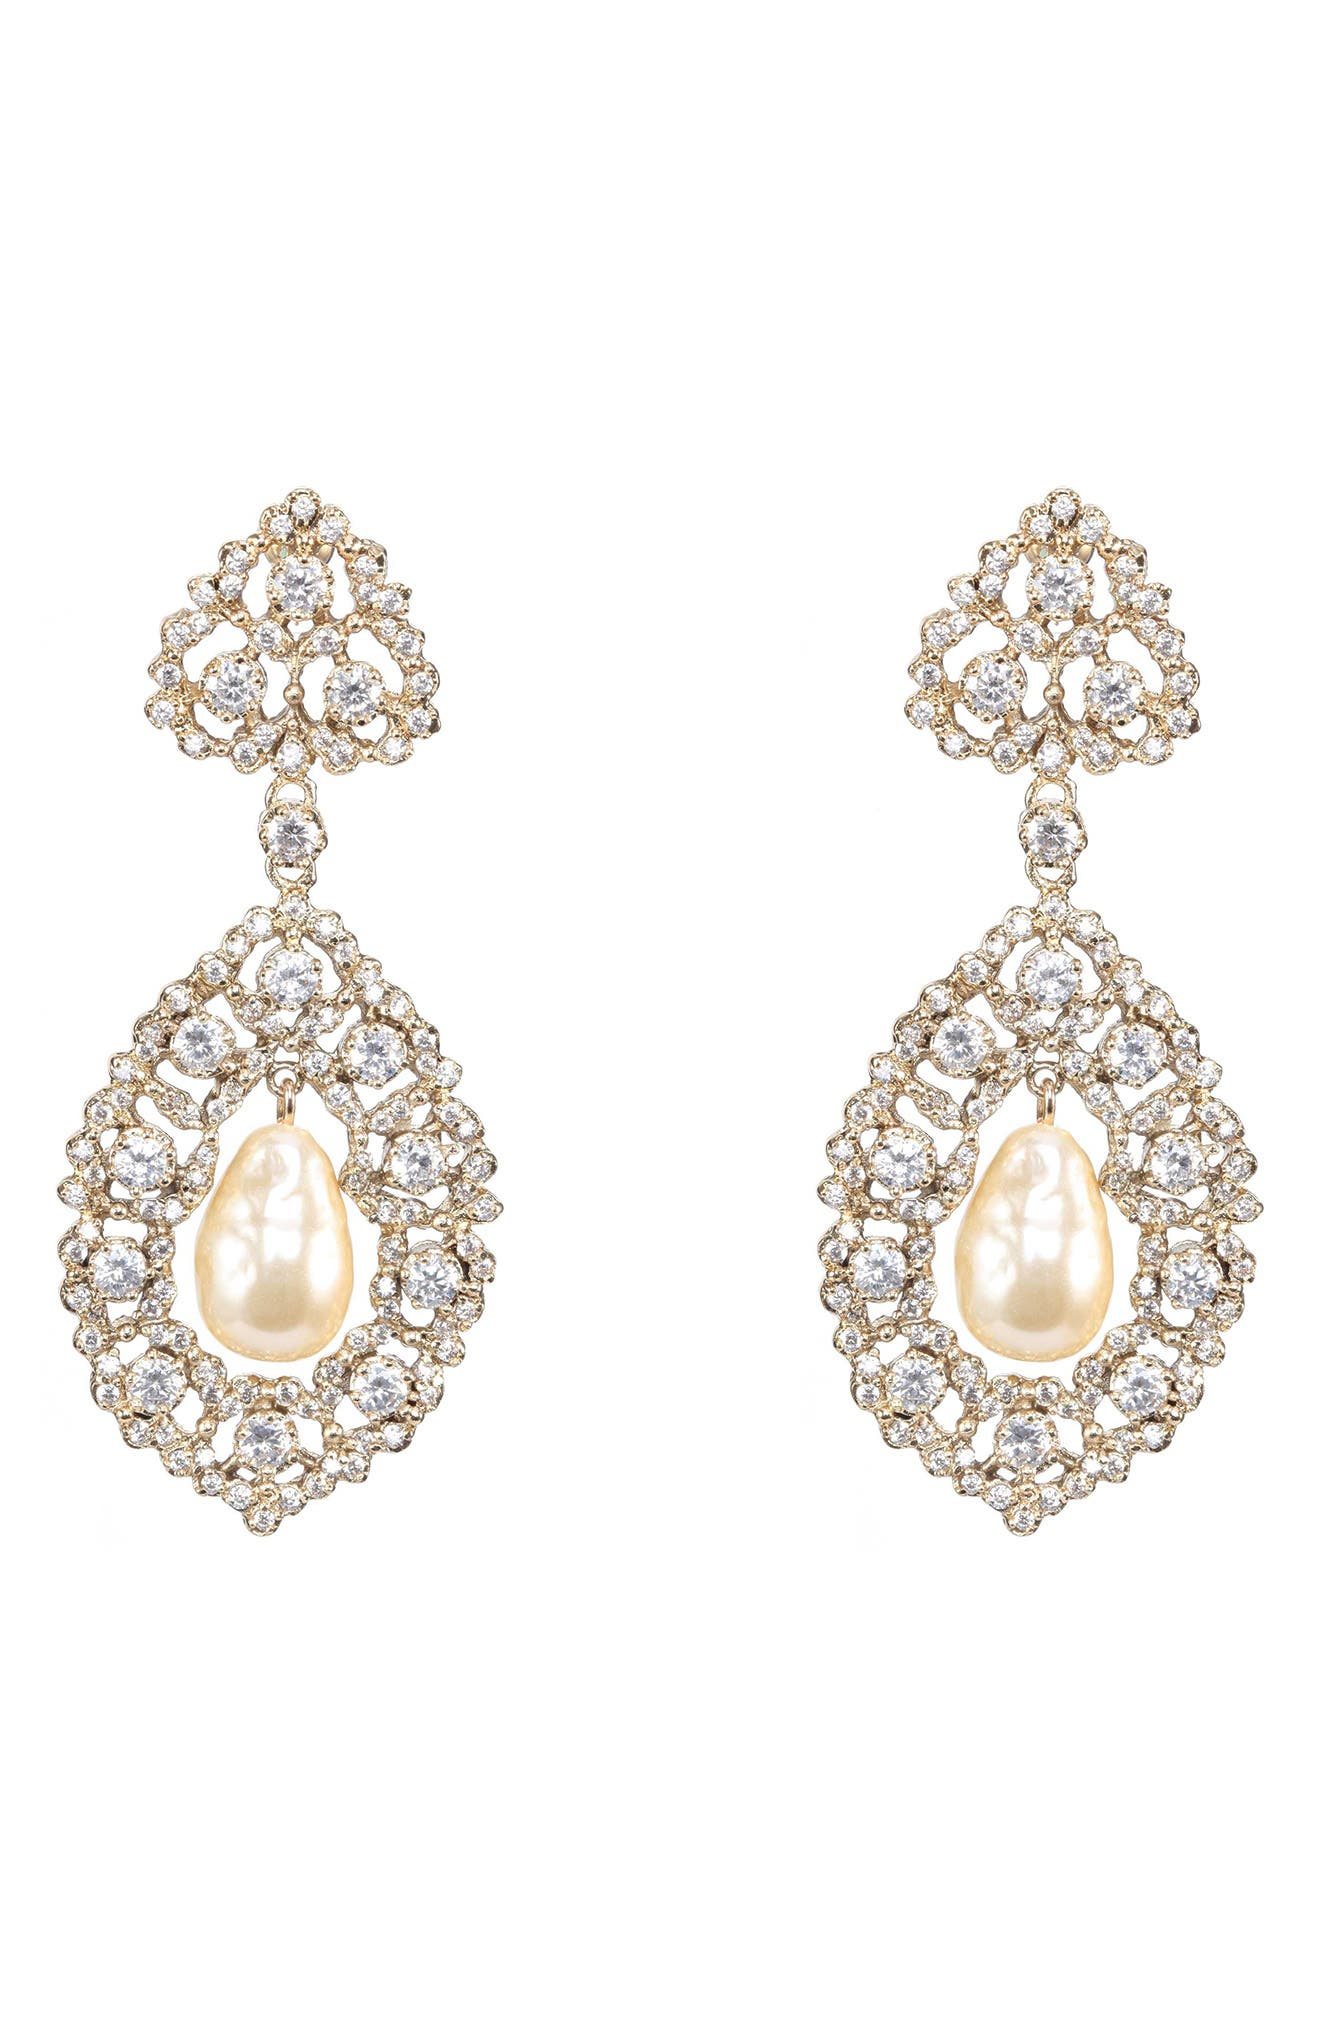 Rococo Double Drop Imitation Pearl Earrings,                         Main,                         color, Ivory Pearl/ Gold